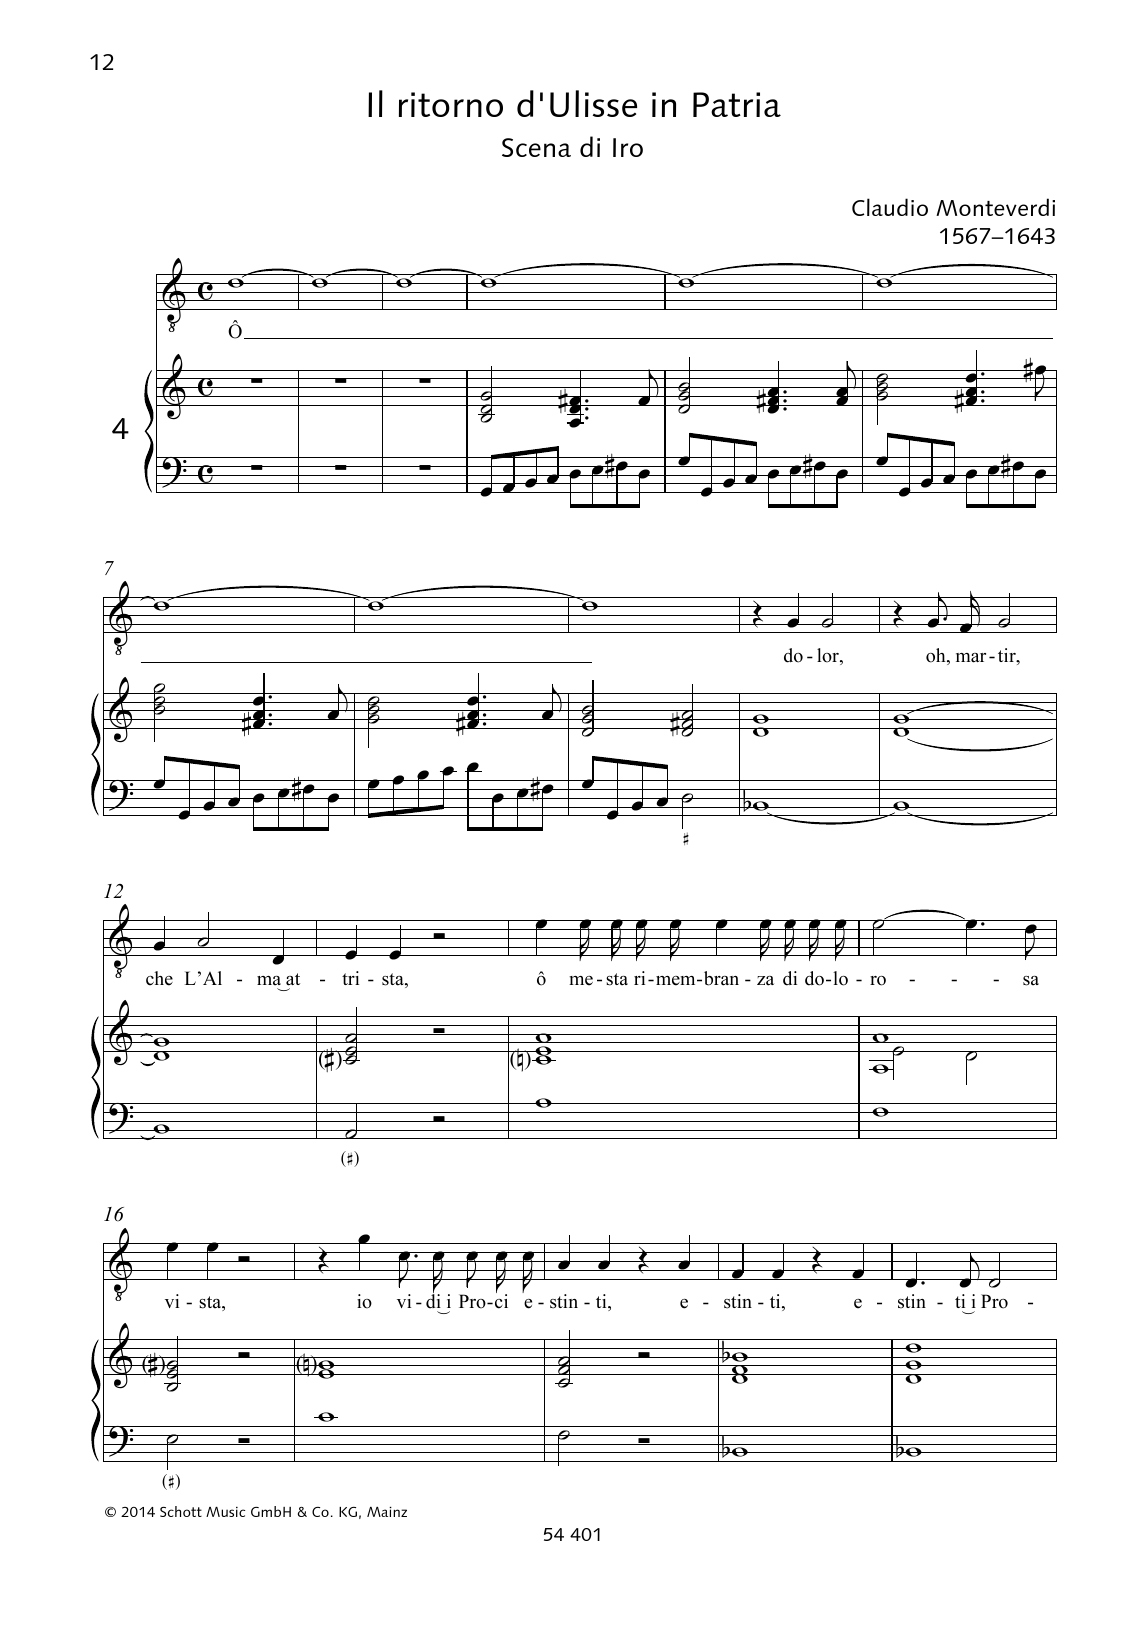 Ô dolor, oh, martir Sheet Music